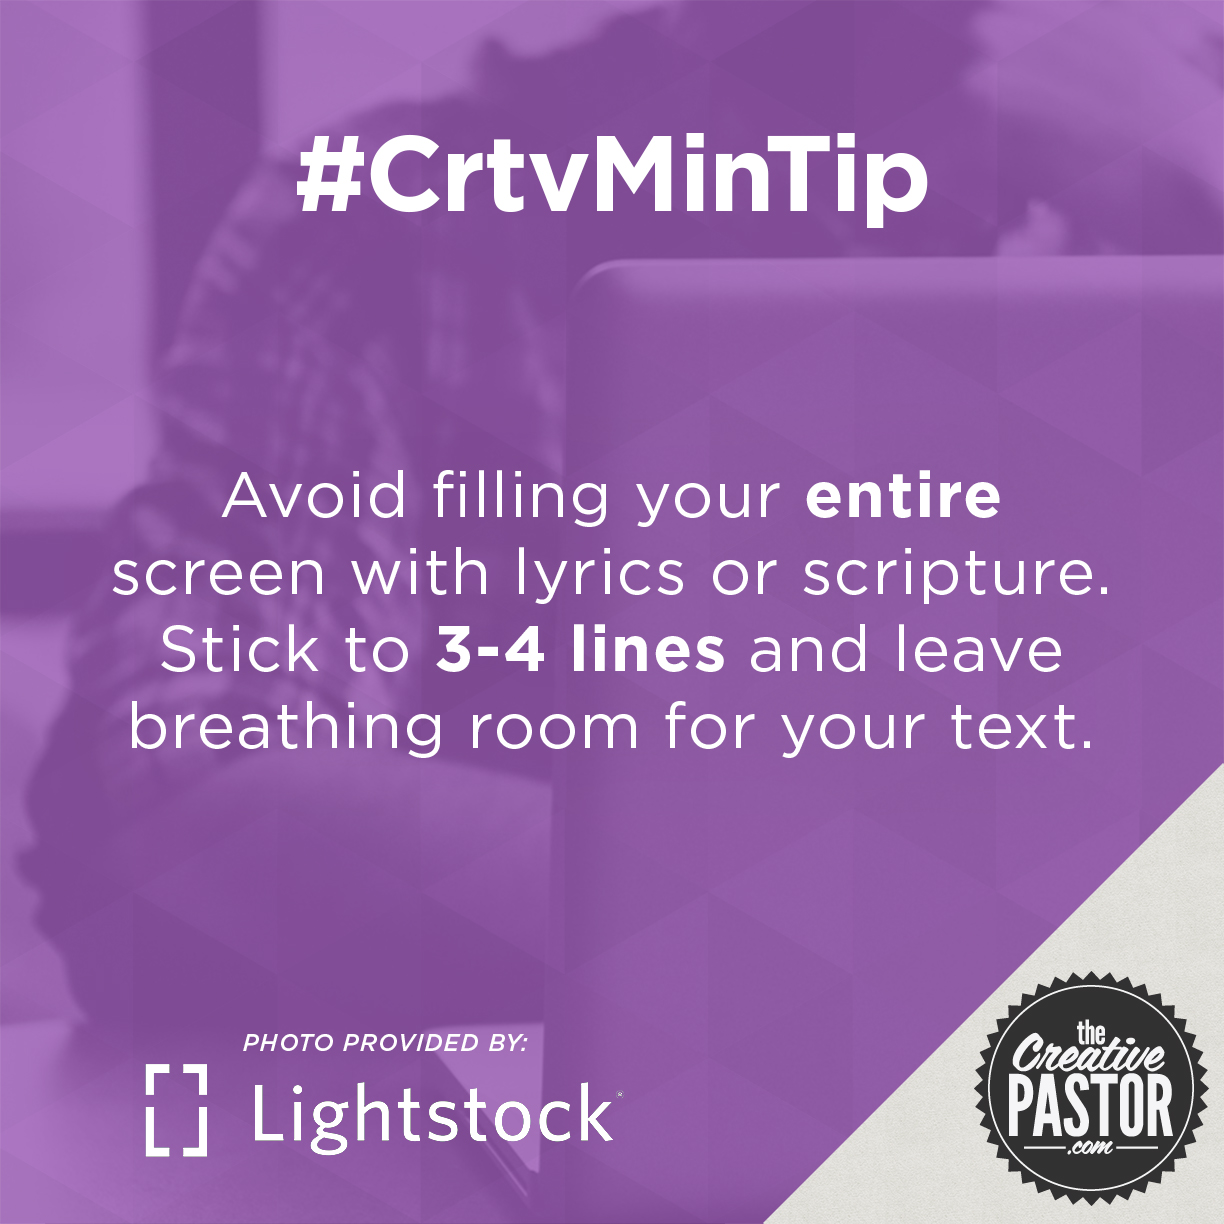 Avoid filling your entire screen with lyrics or scripture. Stick to 3-4 lines and leave breathing room for your text.